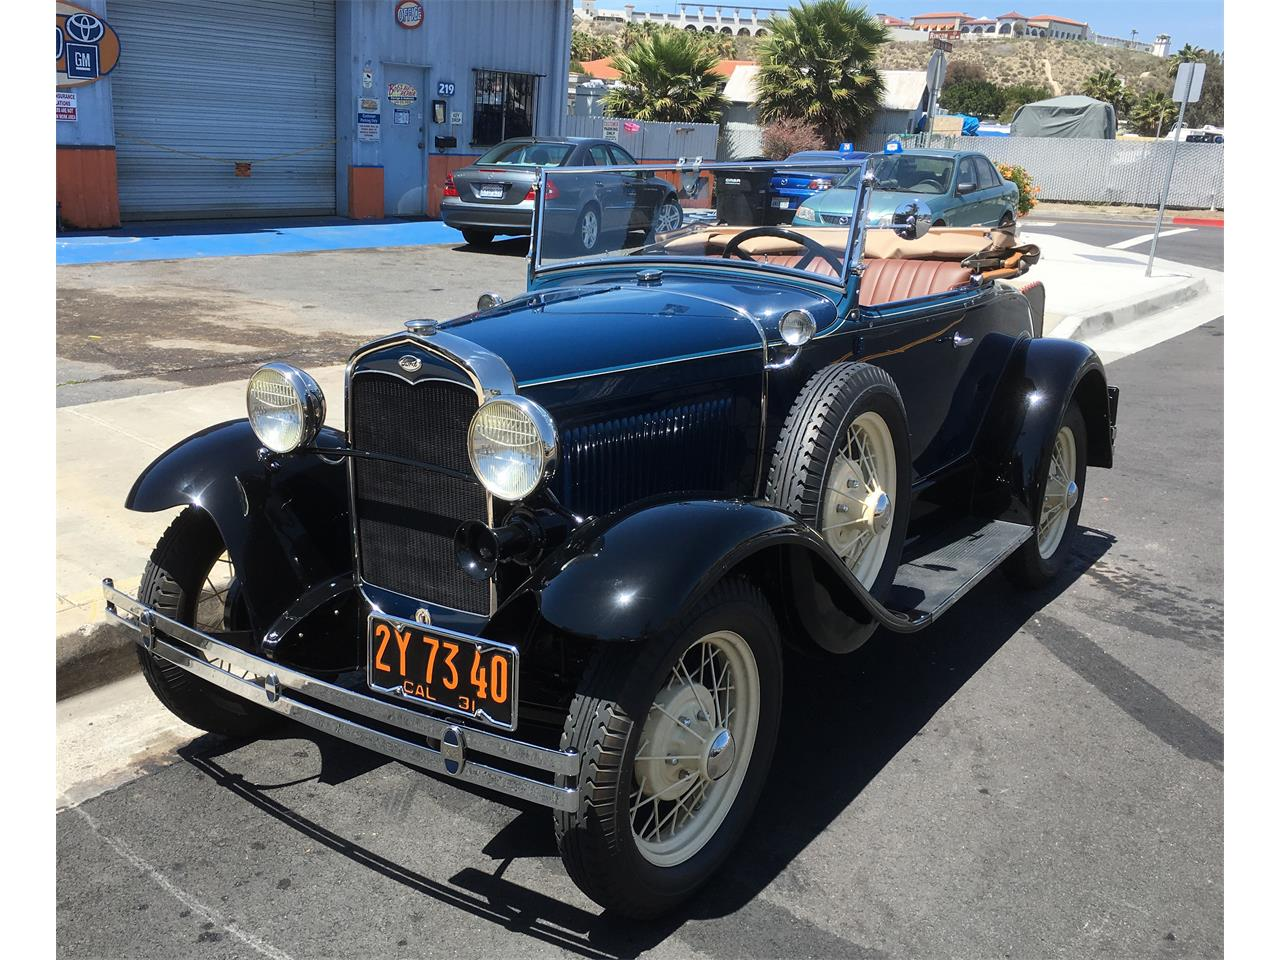 Large Picture of Classic '31 Ford Model A located in san clemente California - $39,999.99 - O8M8